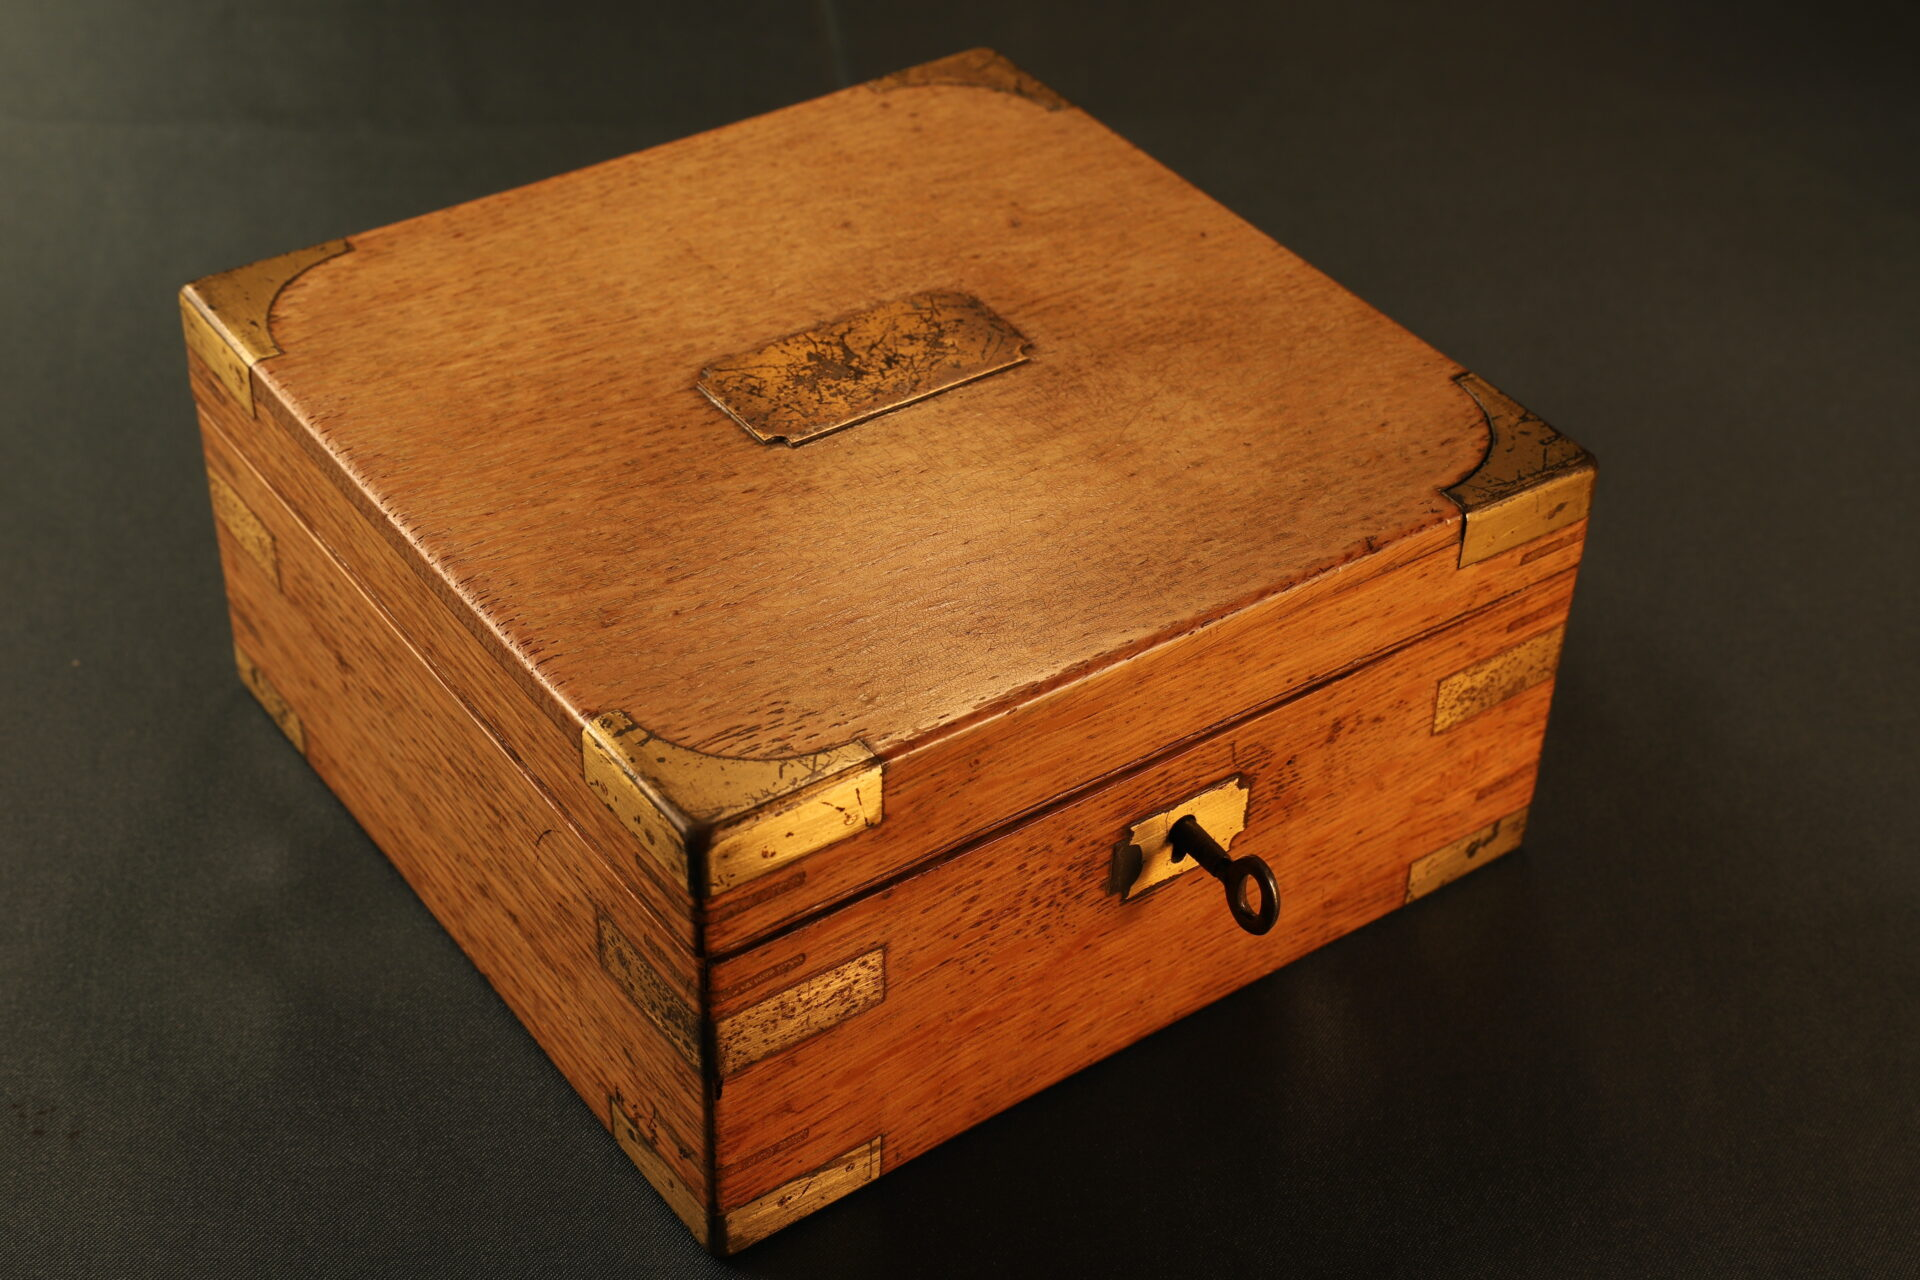 Image of closed case from Short & Mason Chart Table Barometer c1906